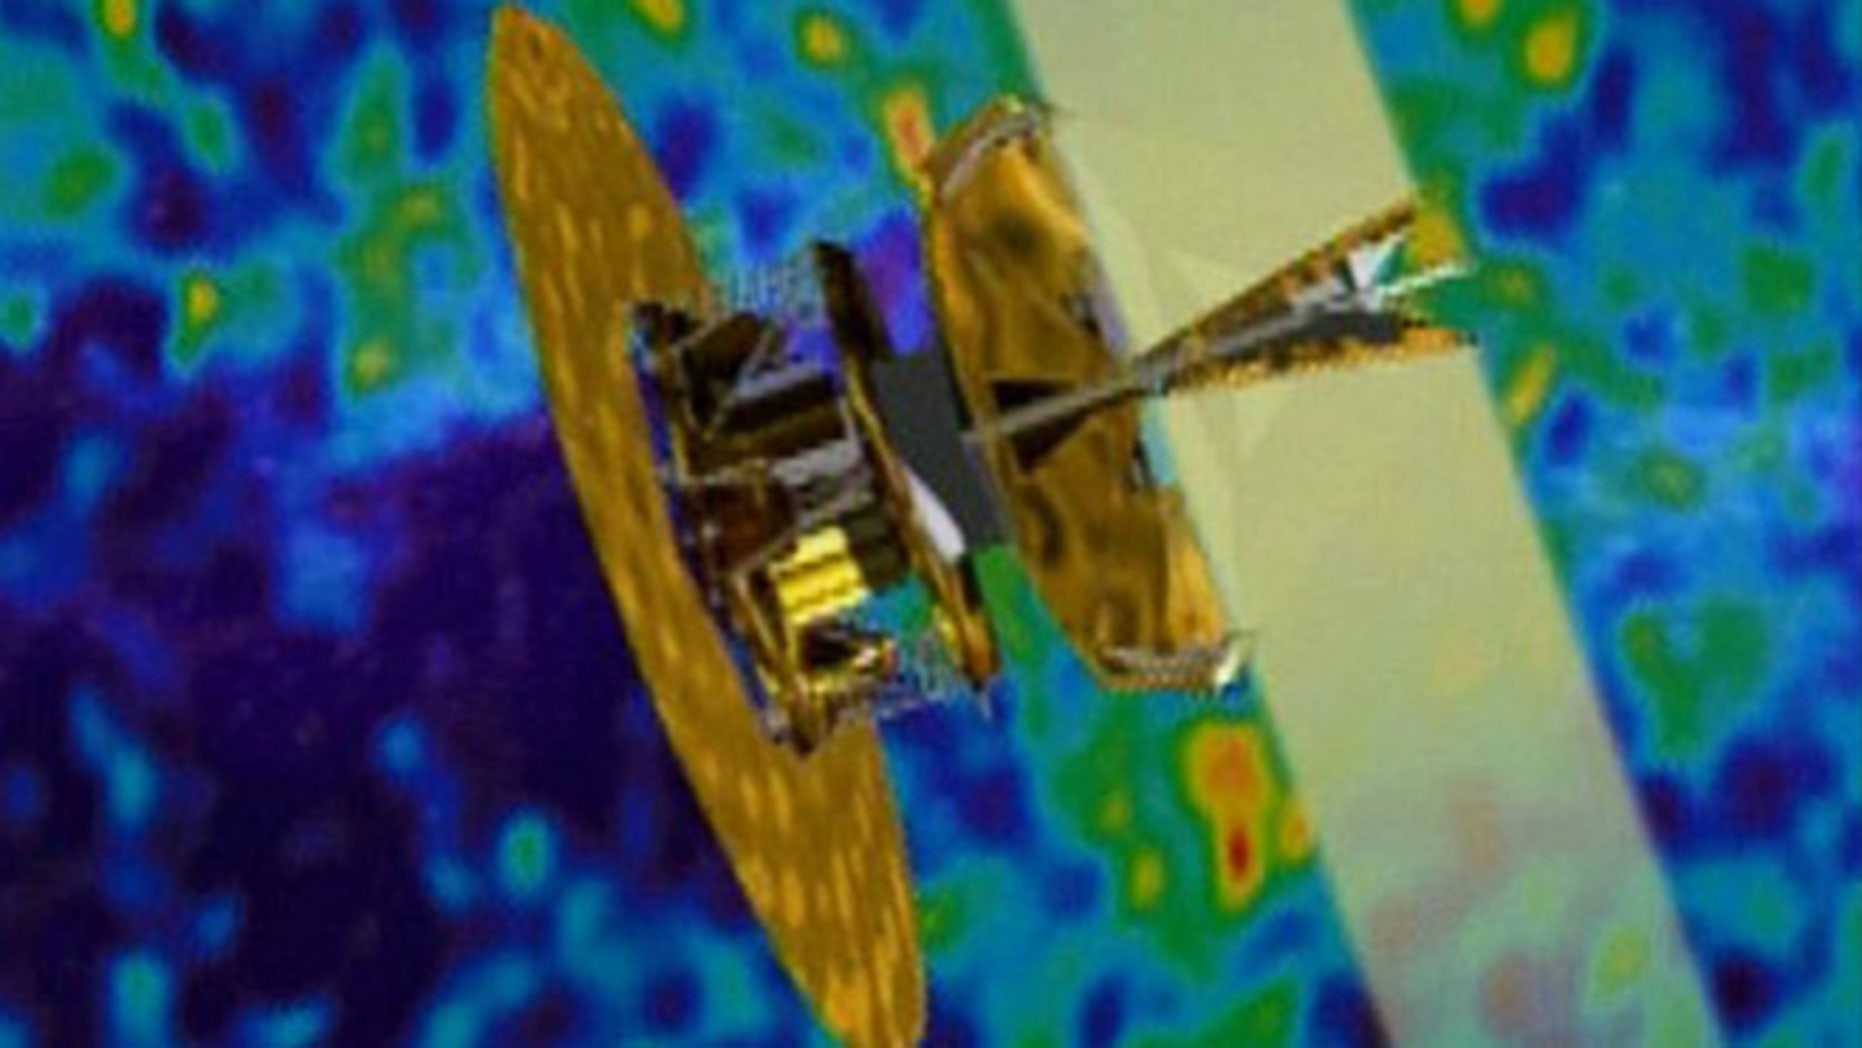 A picture of the Wilkinson Microwave Anisotropy Probe superimposed over a visualization of cosmic microwave background radiation.